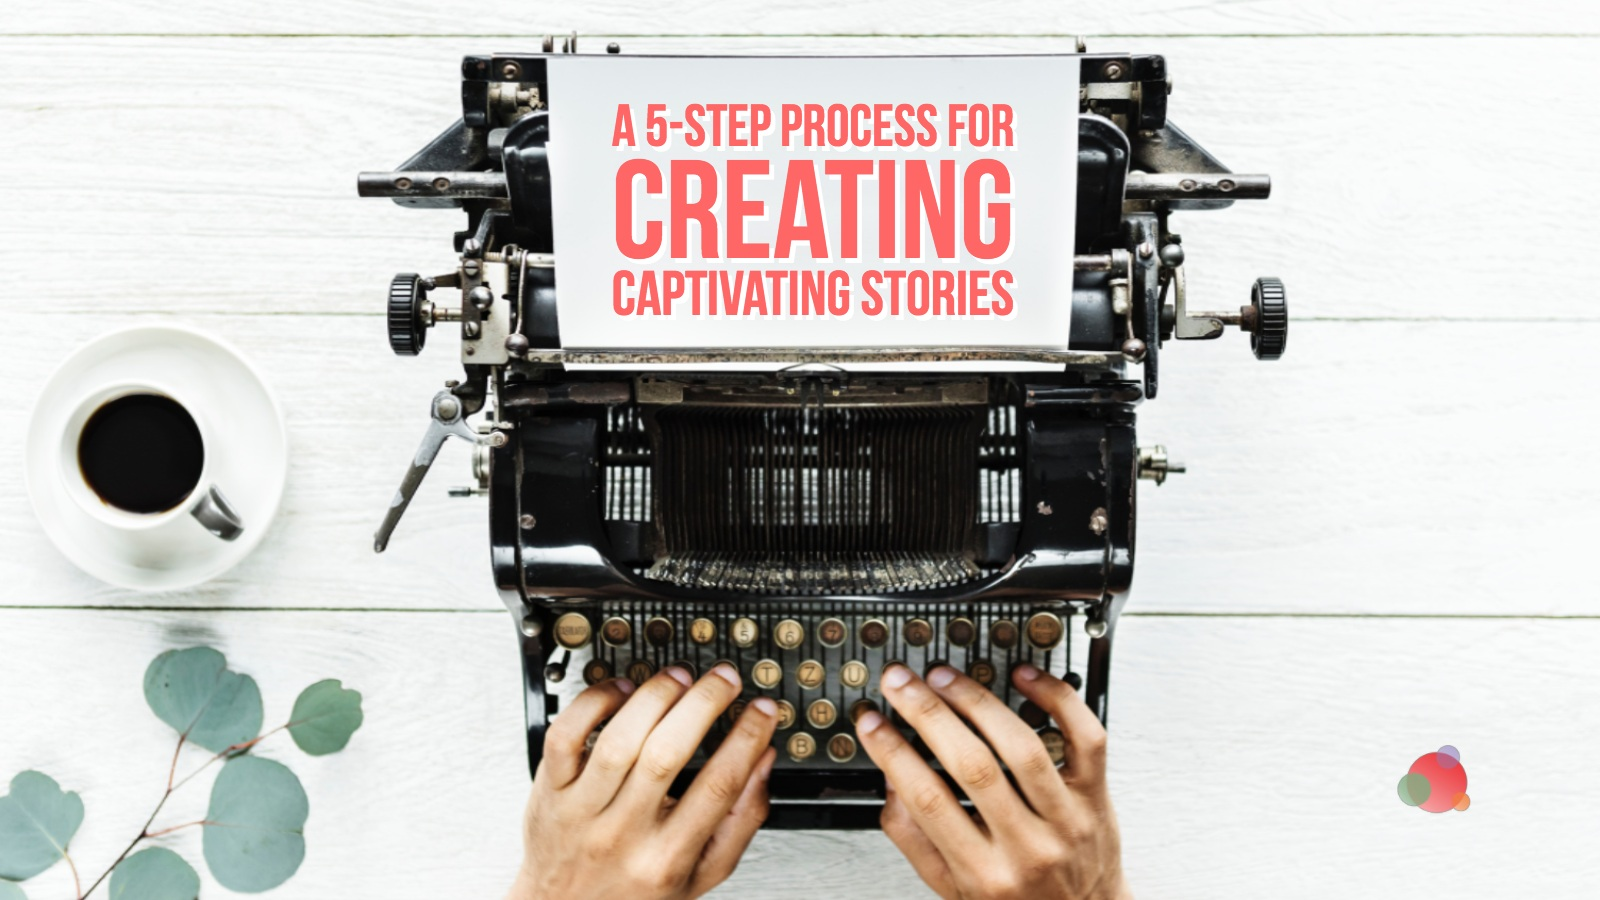 The Five-Step Process for Creative Storytelling at Work